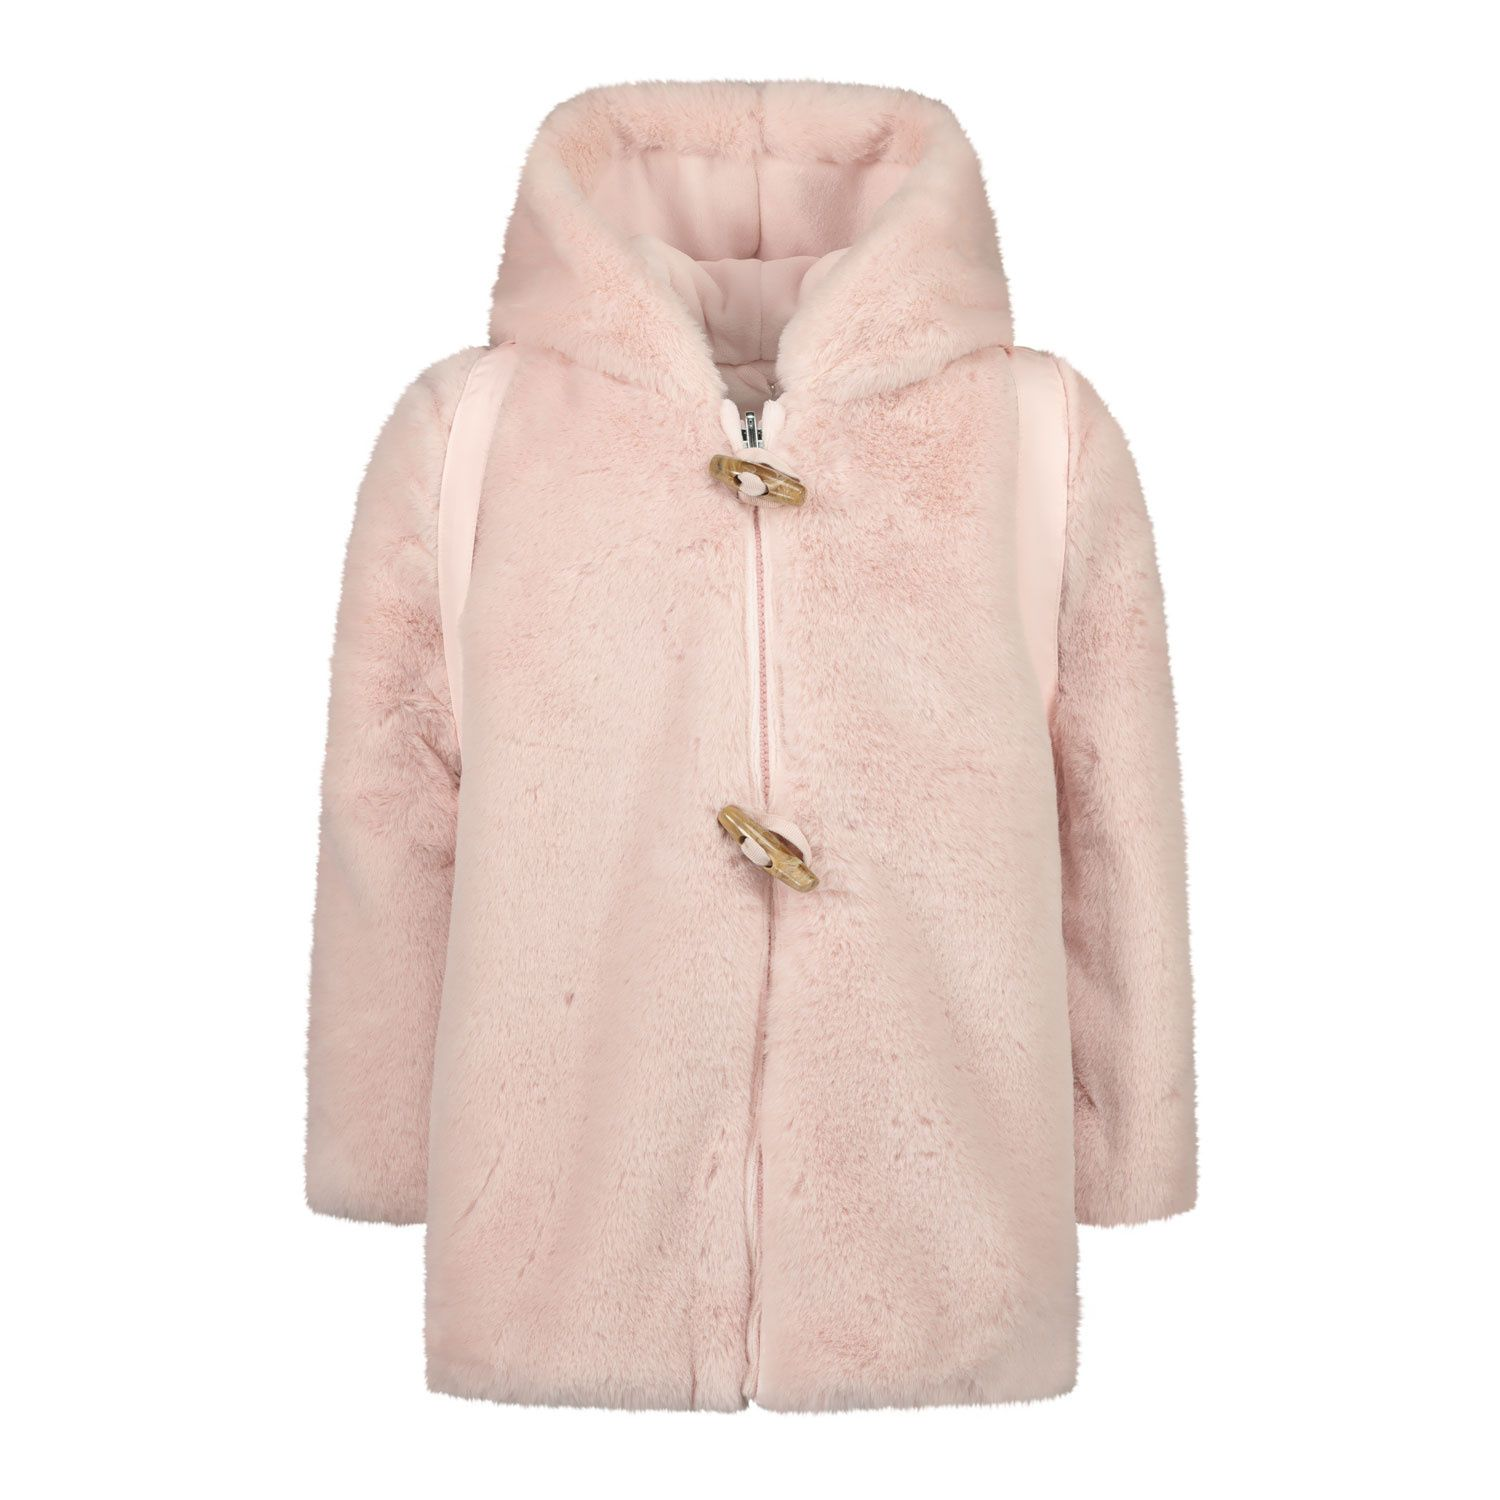 Picture of Lapin 202E1213 baby coat light pink